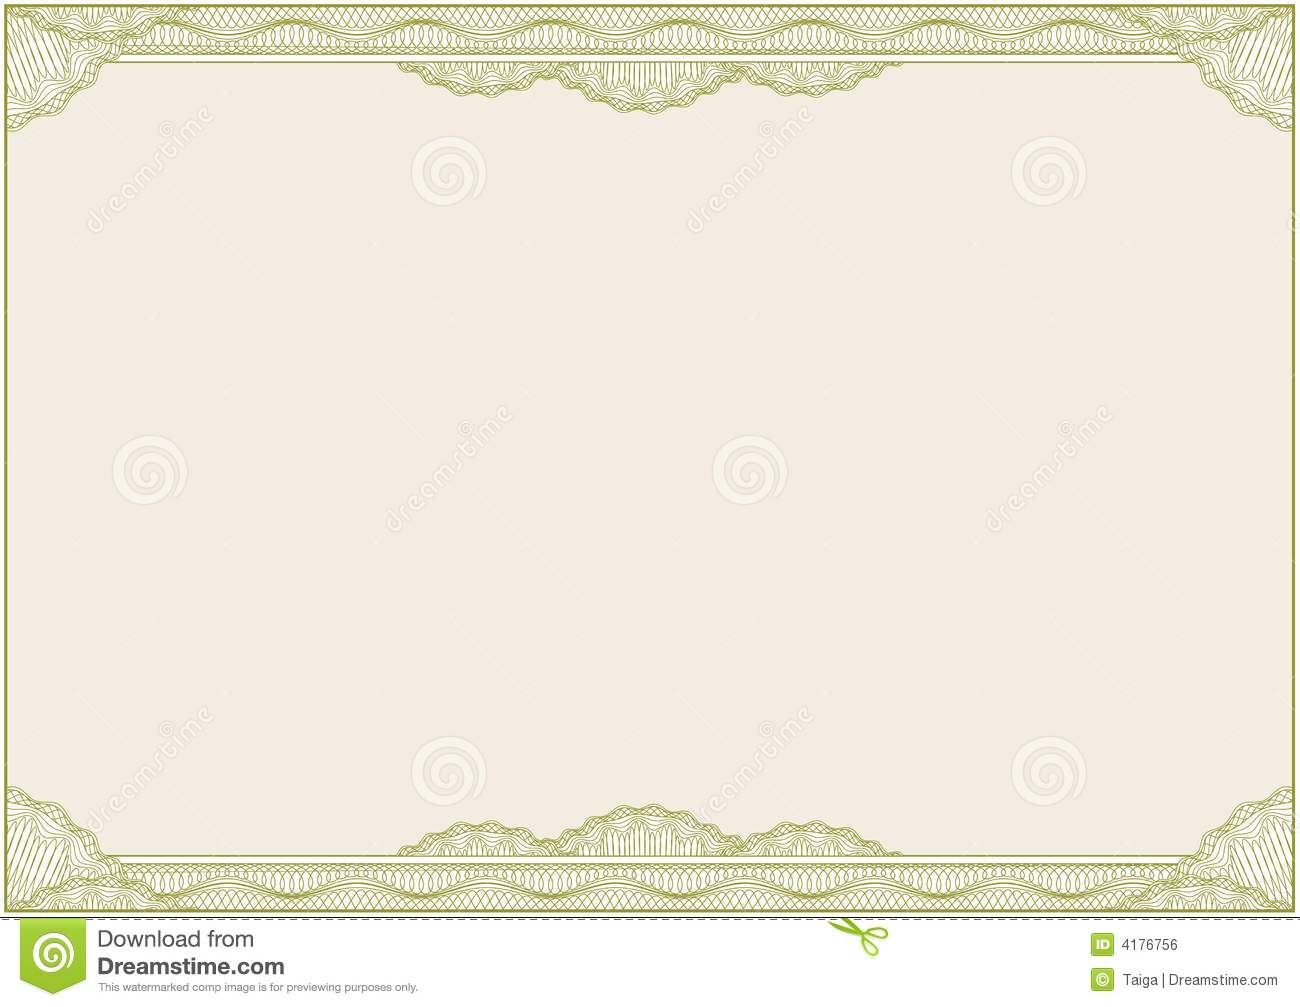 Diploma Or Certificate Border A4 Vector Royalty Free – Certificate Borders Free Download